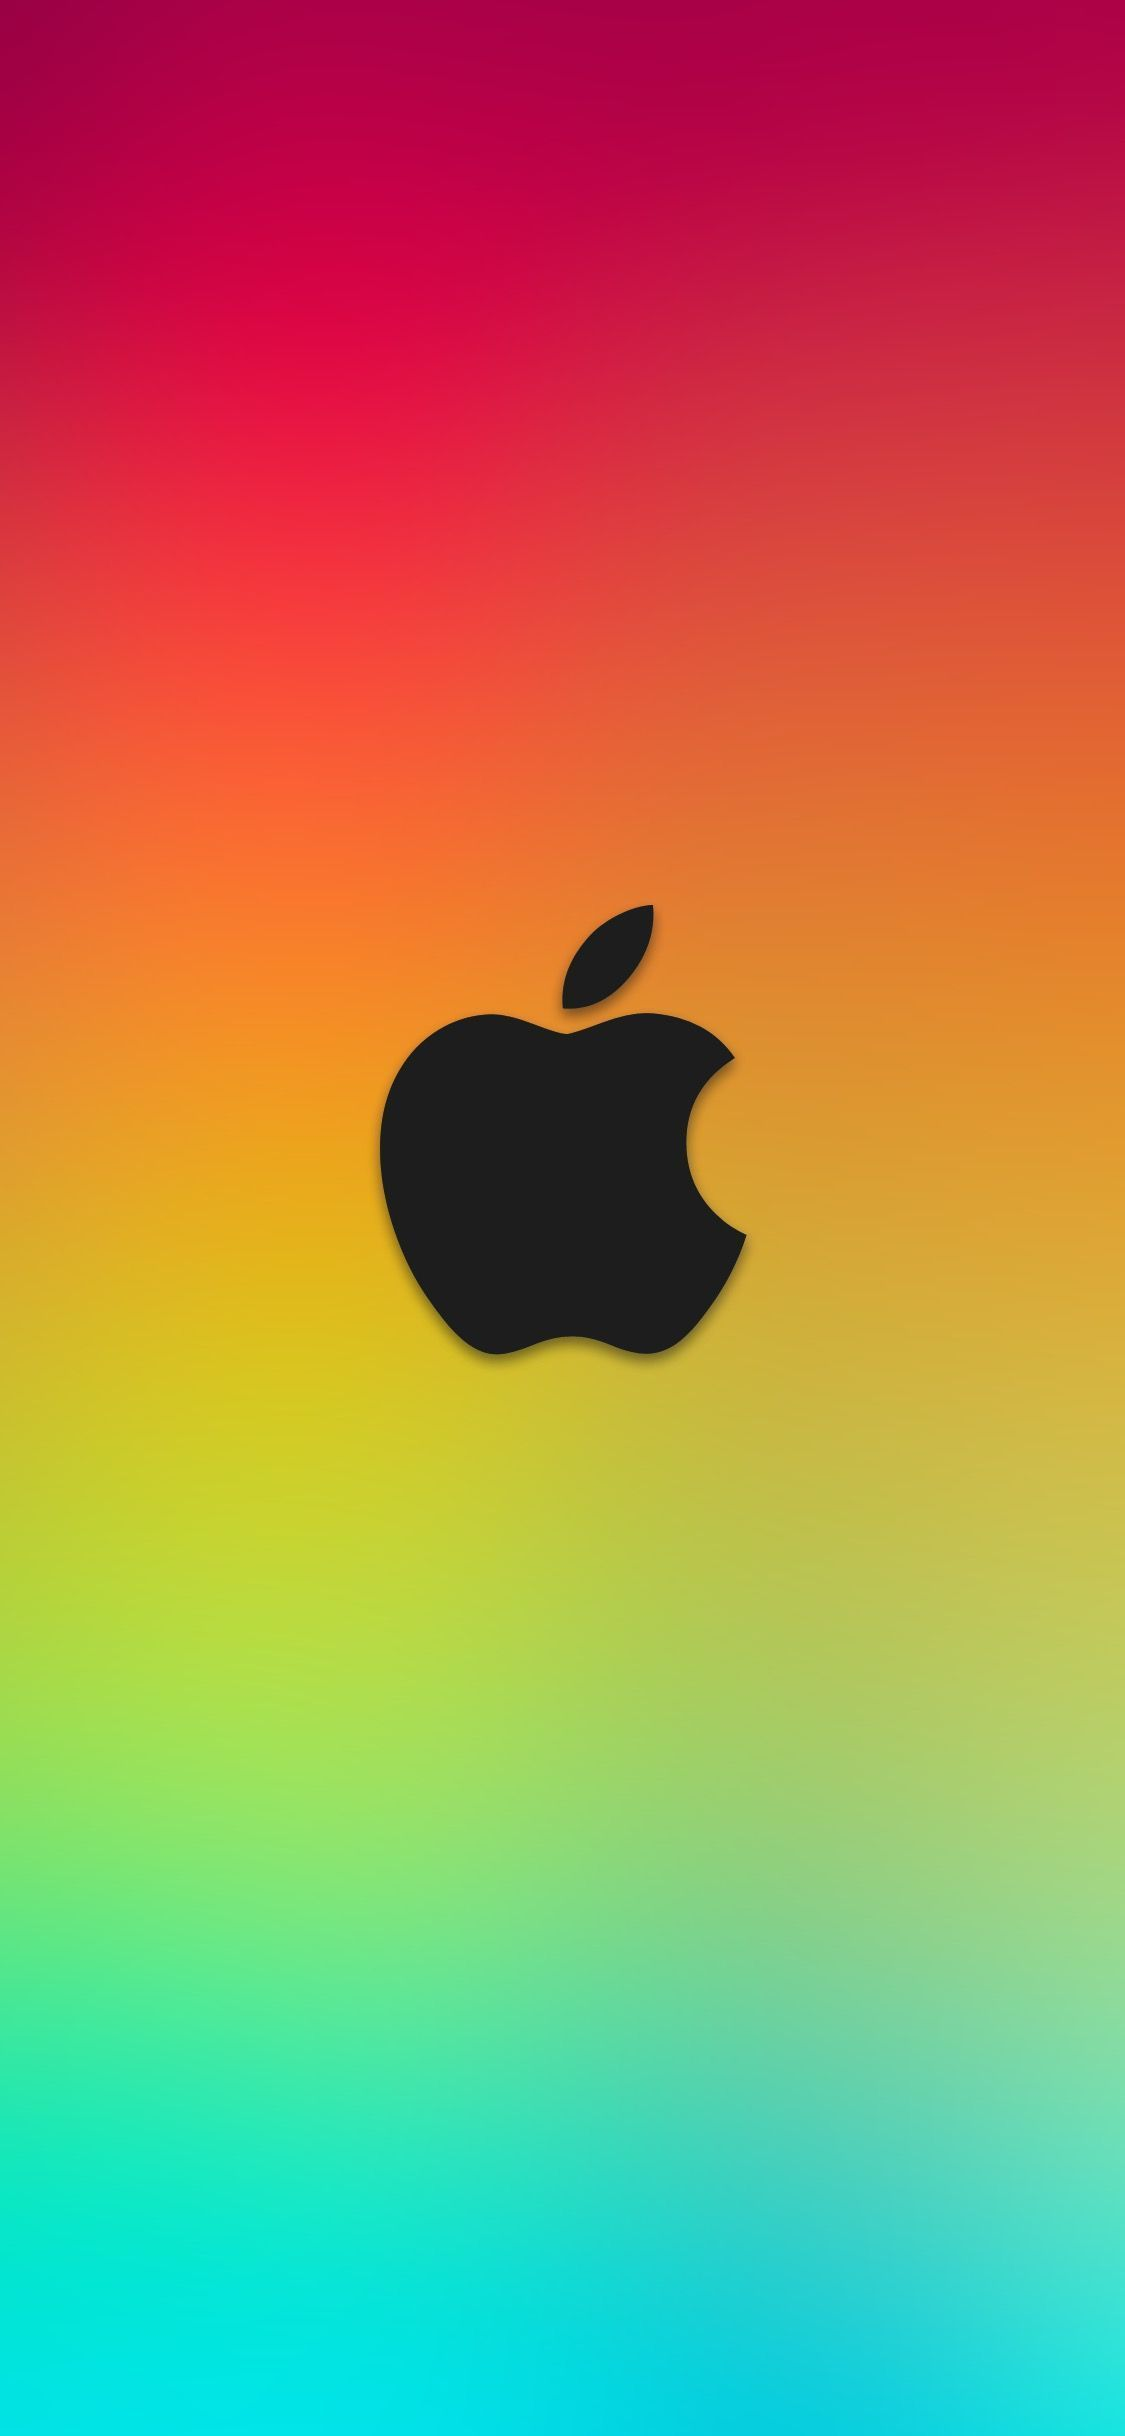 colorful lockscreen  #ios13wallpaper #iOS13 #iphonewallpaper #apple #logo #colorful #lockscreen #ios13wallpaper colorful lockscreen  #ios13wallpaper #iOS13 #iphonewallpaper #apple #logo #colorful #lockscreen #ios13wallpaper colorful lockscreen  #ios13wallpaper #iOS13 #iphonewallpaper #apple #logo #colorful #lockscreen #ios13wallpaper colorful lockscreen  #ios13wallpaper #iOS13 #iphonewallpaper #apple #logo #colorful #lockscreen #ios13wallpaper colorful lockscreen  #ios13wallpaper #iOS13 #iphonew #ios13wallpaper